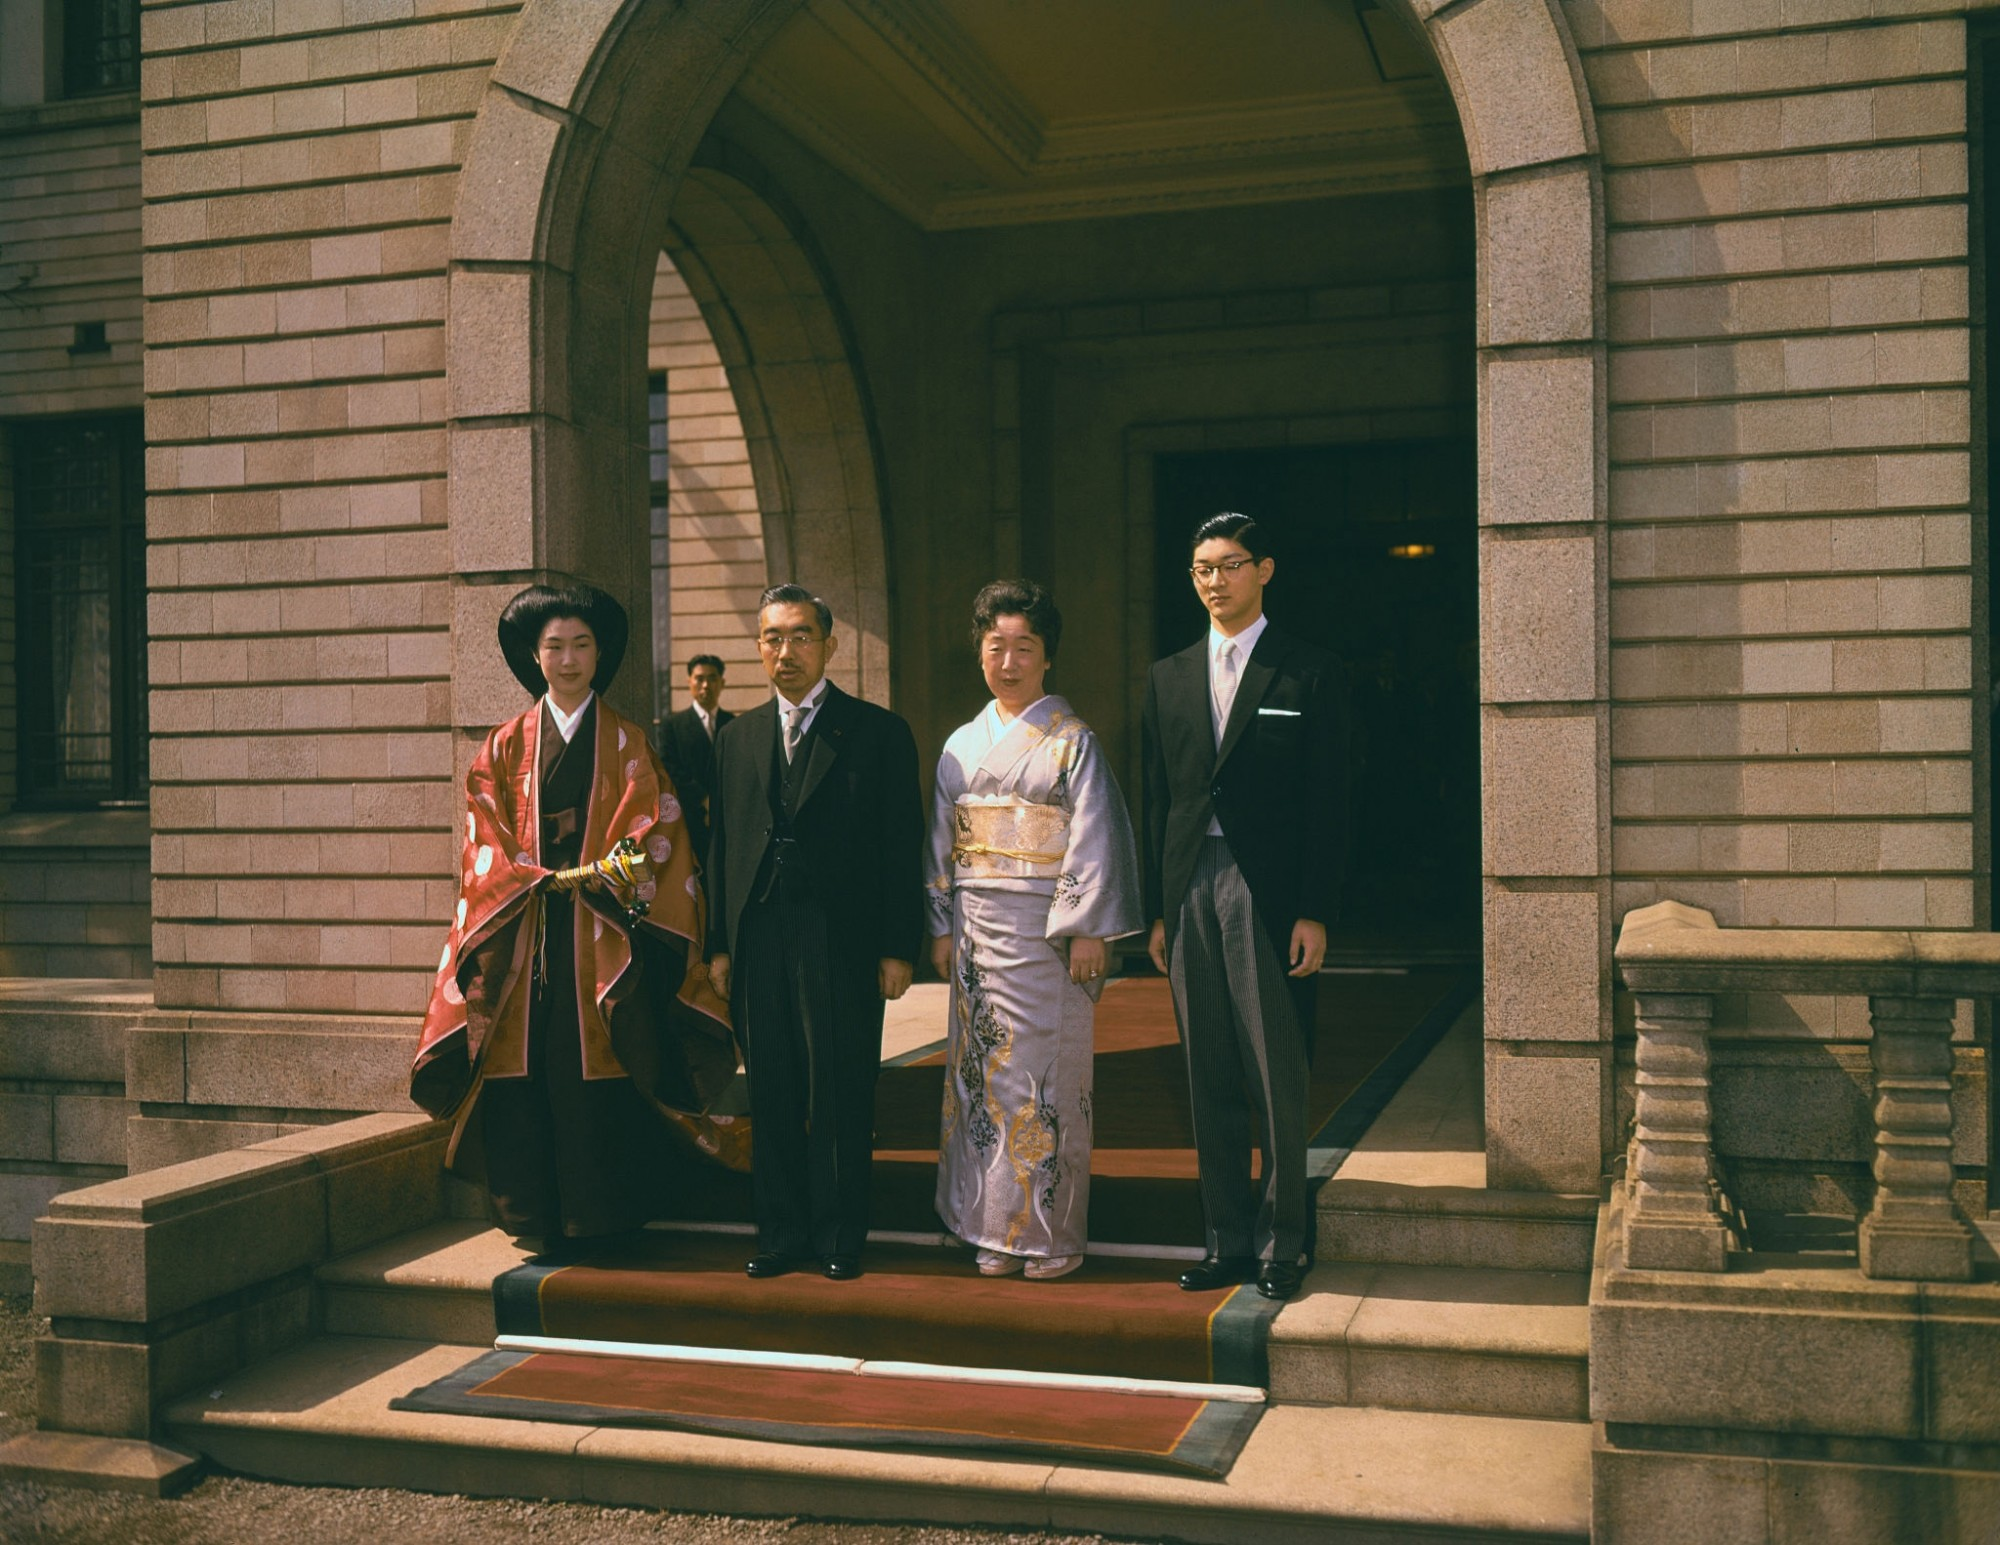 1960 after a centuries-old wedding ceremony held at the stately Korin Mansion here are, (left to right), newlywed former Princess Suga of Japan